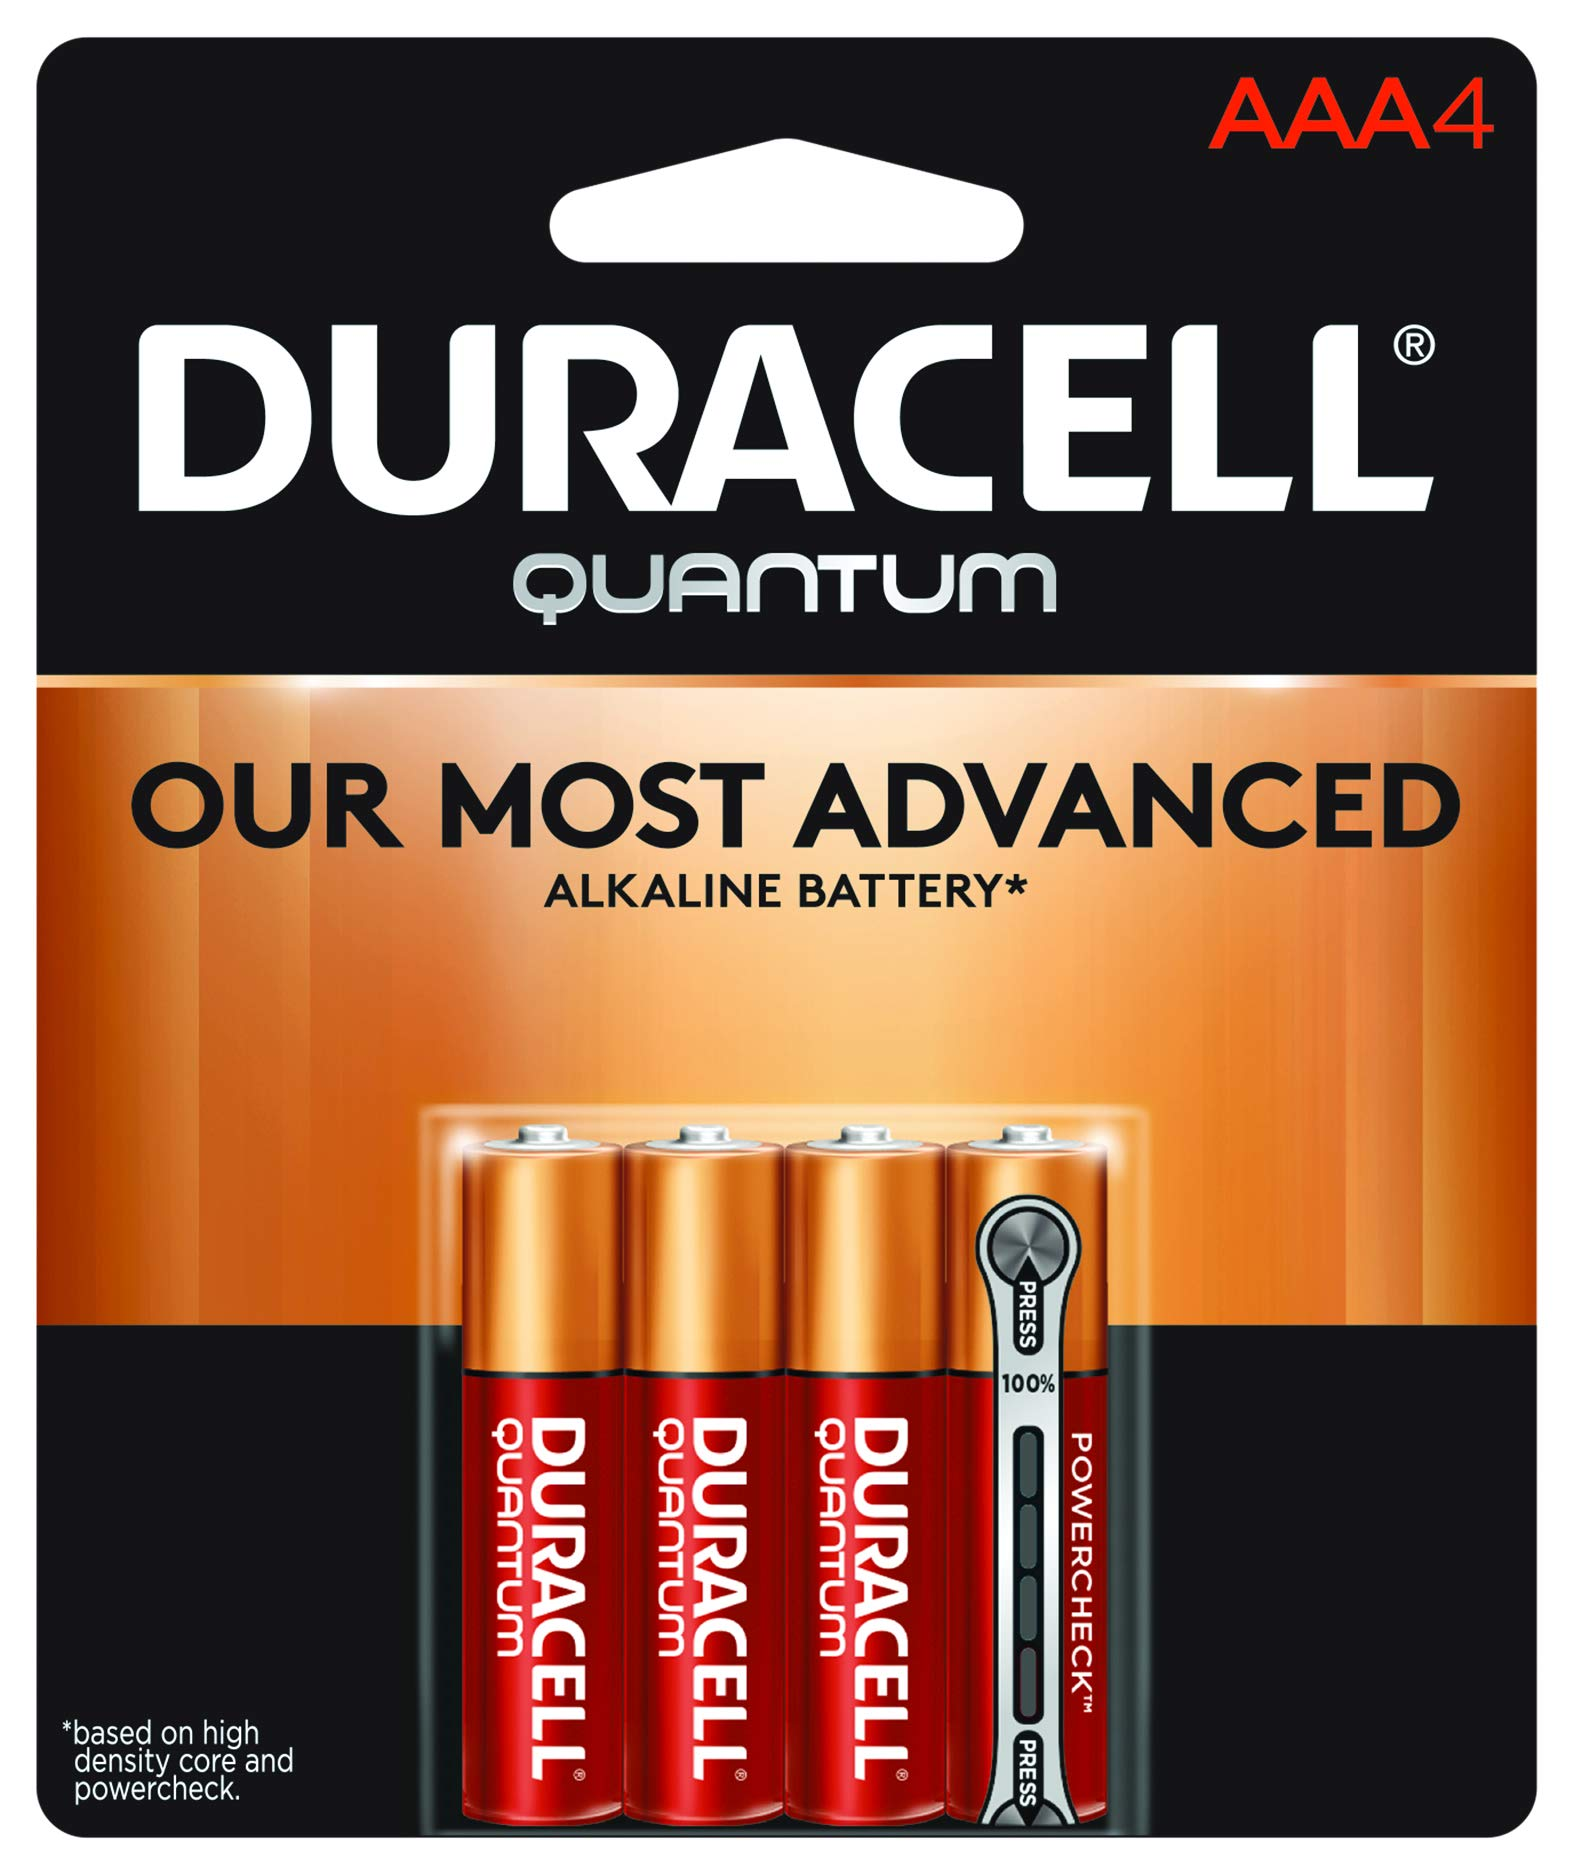 Duracell - Quantum AAA Alkaline Batteries - long lasting, all-purpose Triple A battery for household and business - 4 count